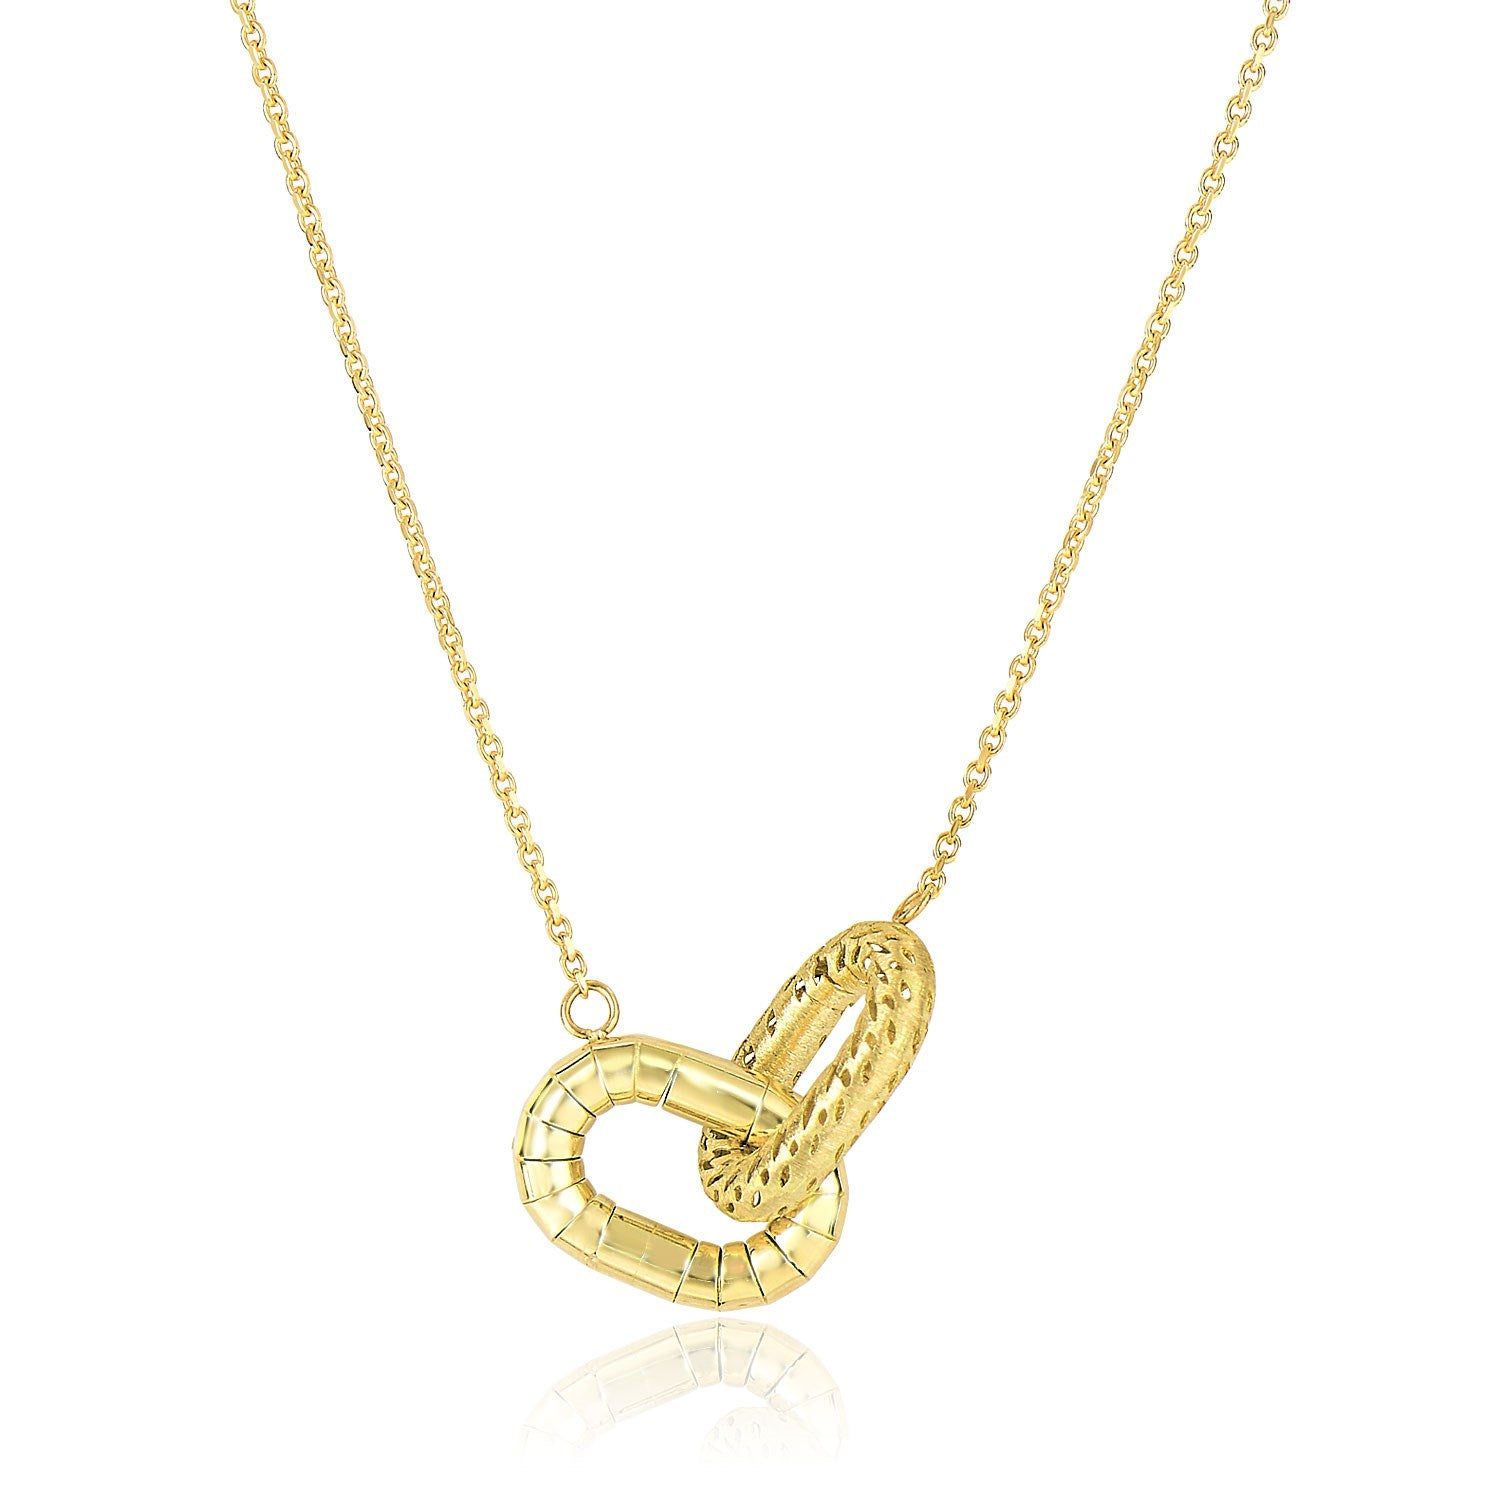 14K Yellow Gold Entwined Textured Oval Chain Necklace